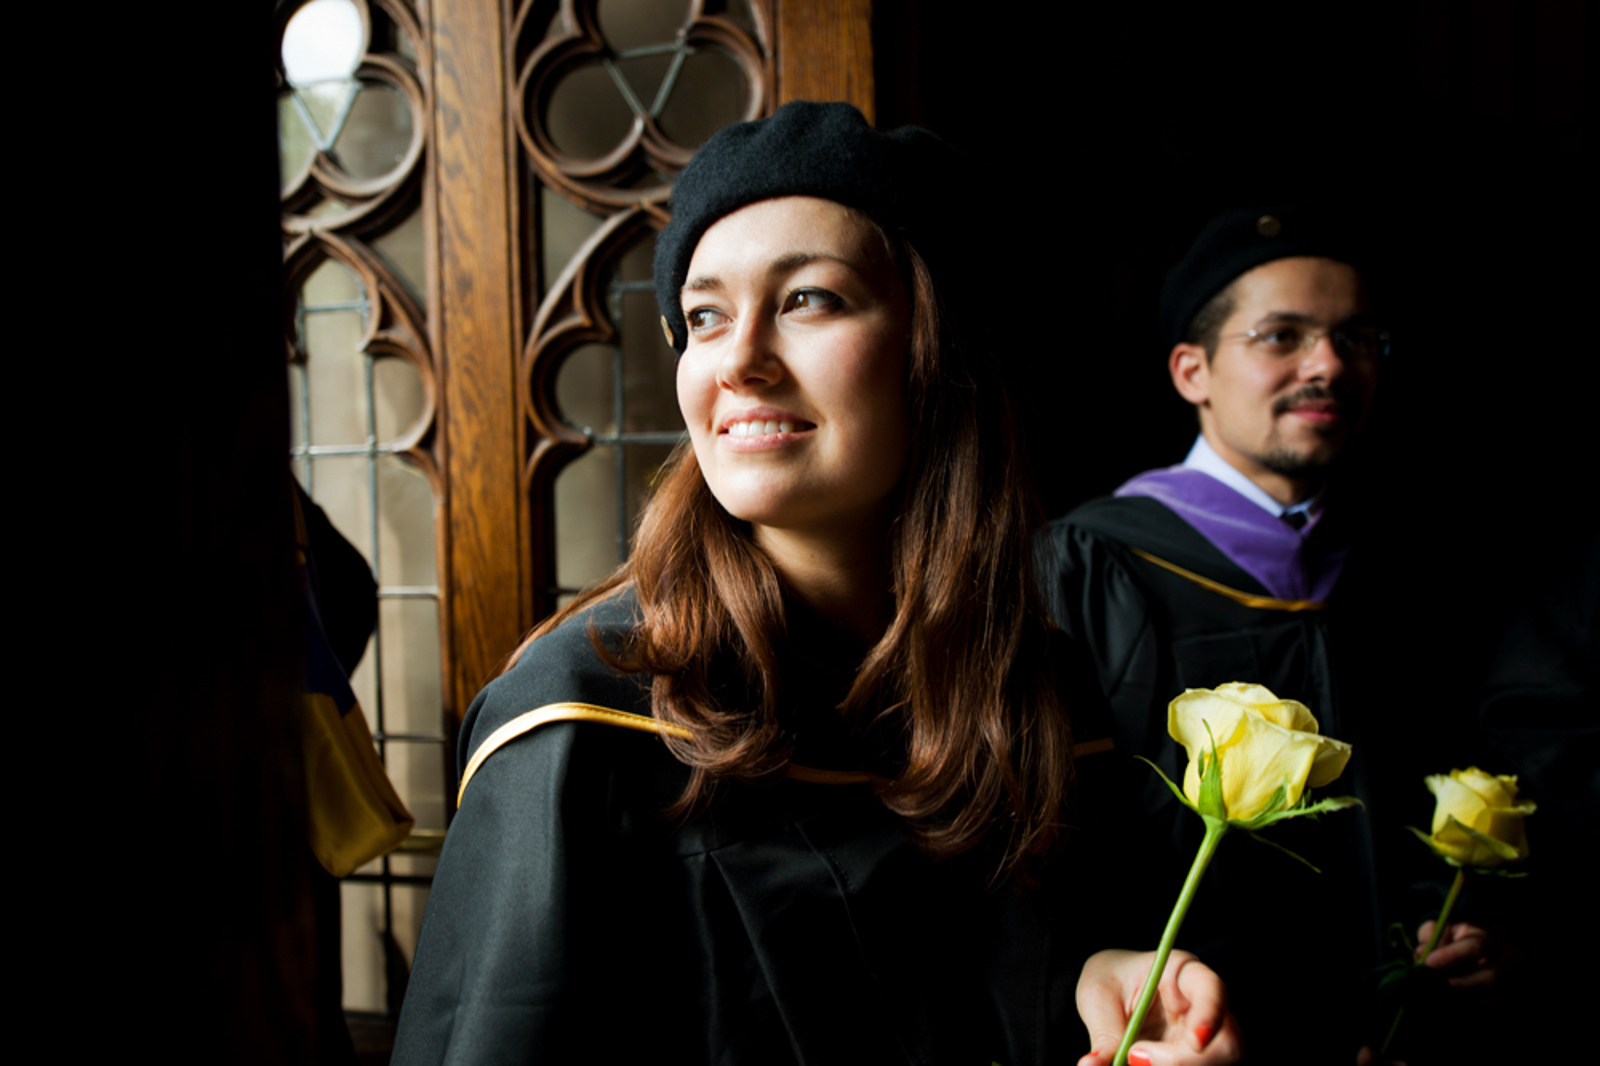 Graduating students in dim lit room, female student in foreground holding flower, smiling